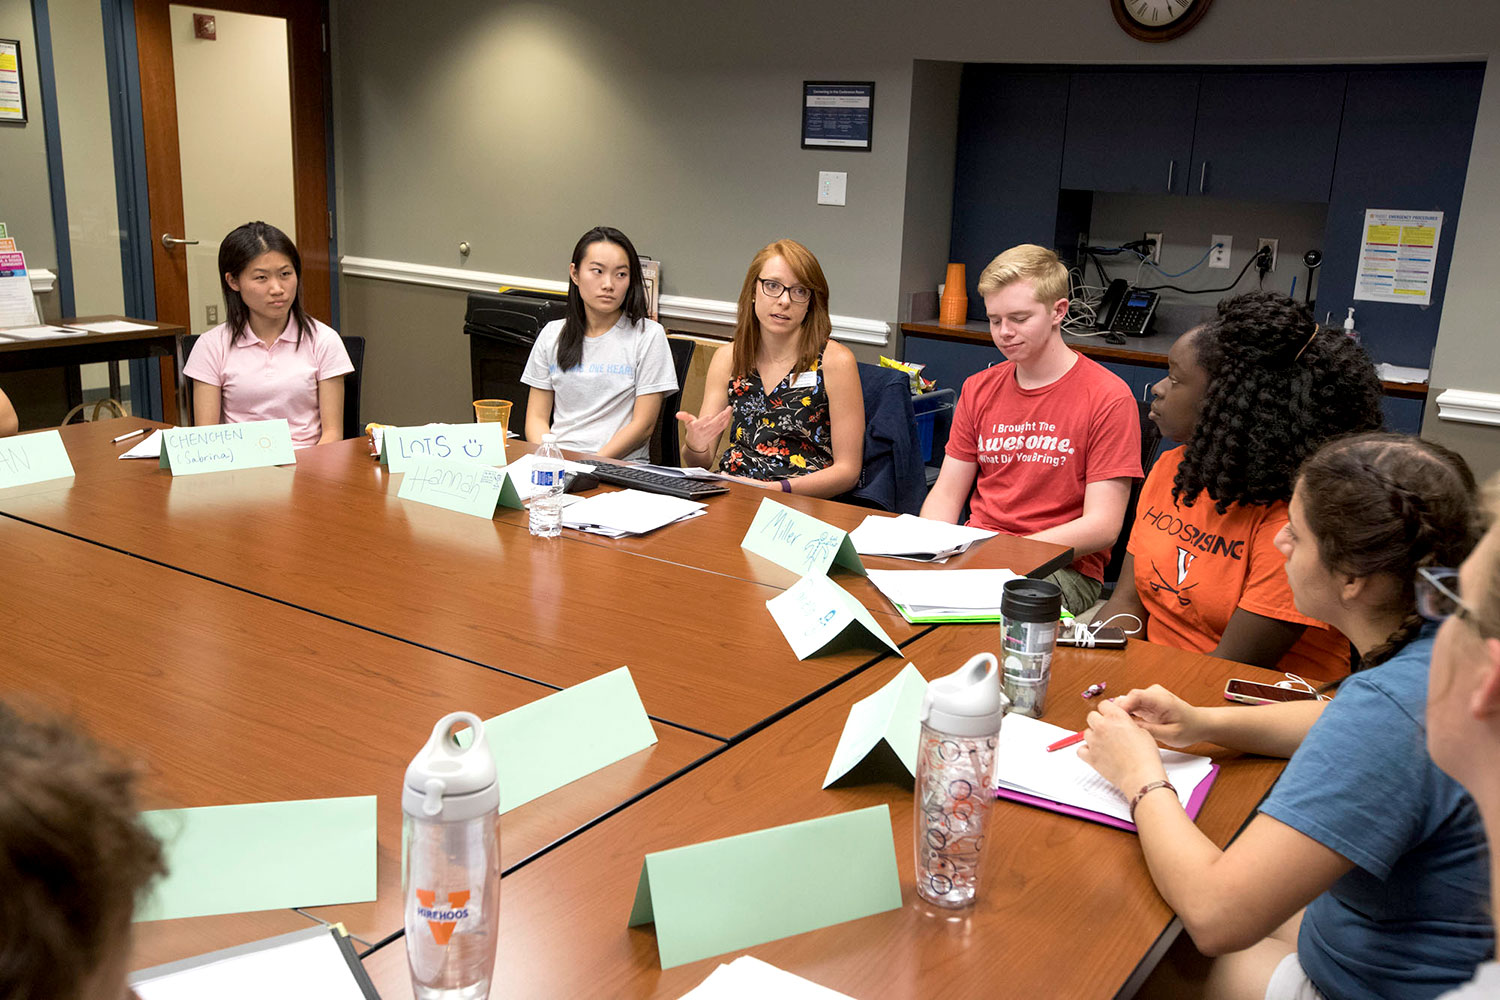 First- and second-year students participating in Career Exploration Workshops spend one hour per week for four weeks reflecting on potential major and career choices.